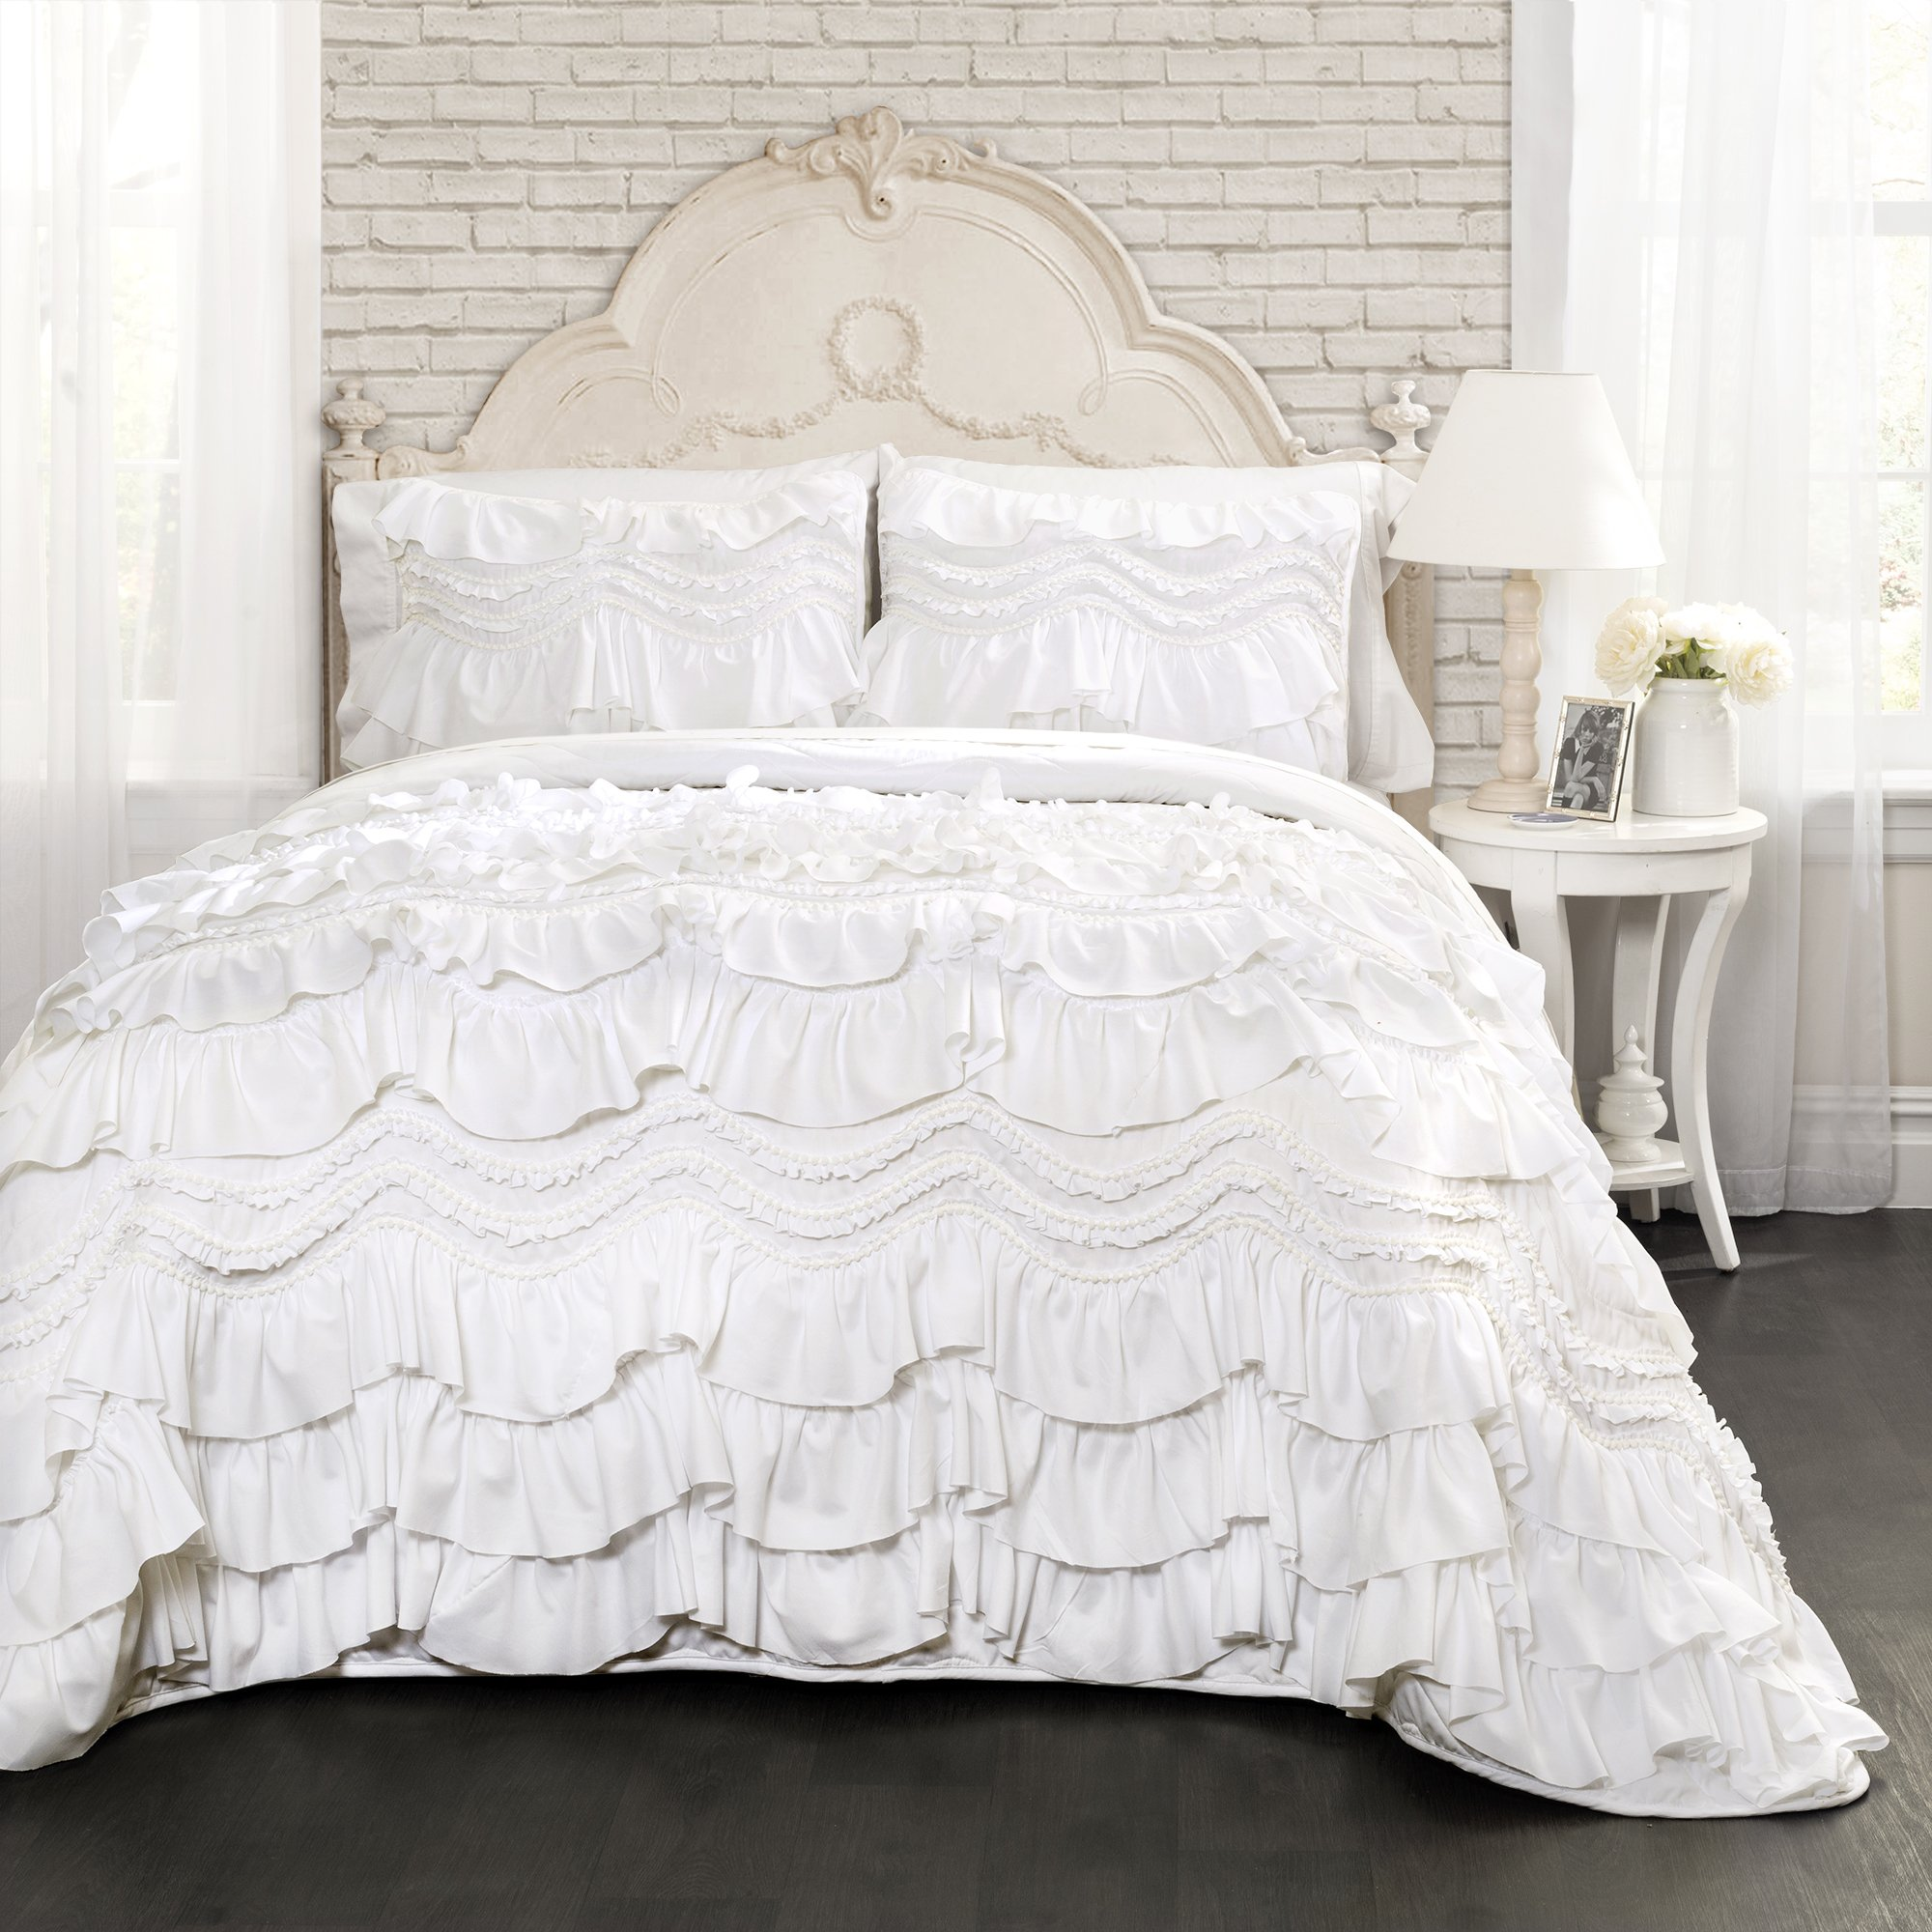 Lush Decor 16T000646 Kemmy 2 Piece Quilt Set, White, Twin